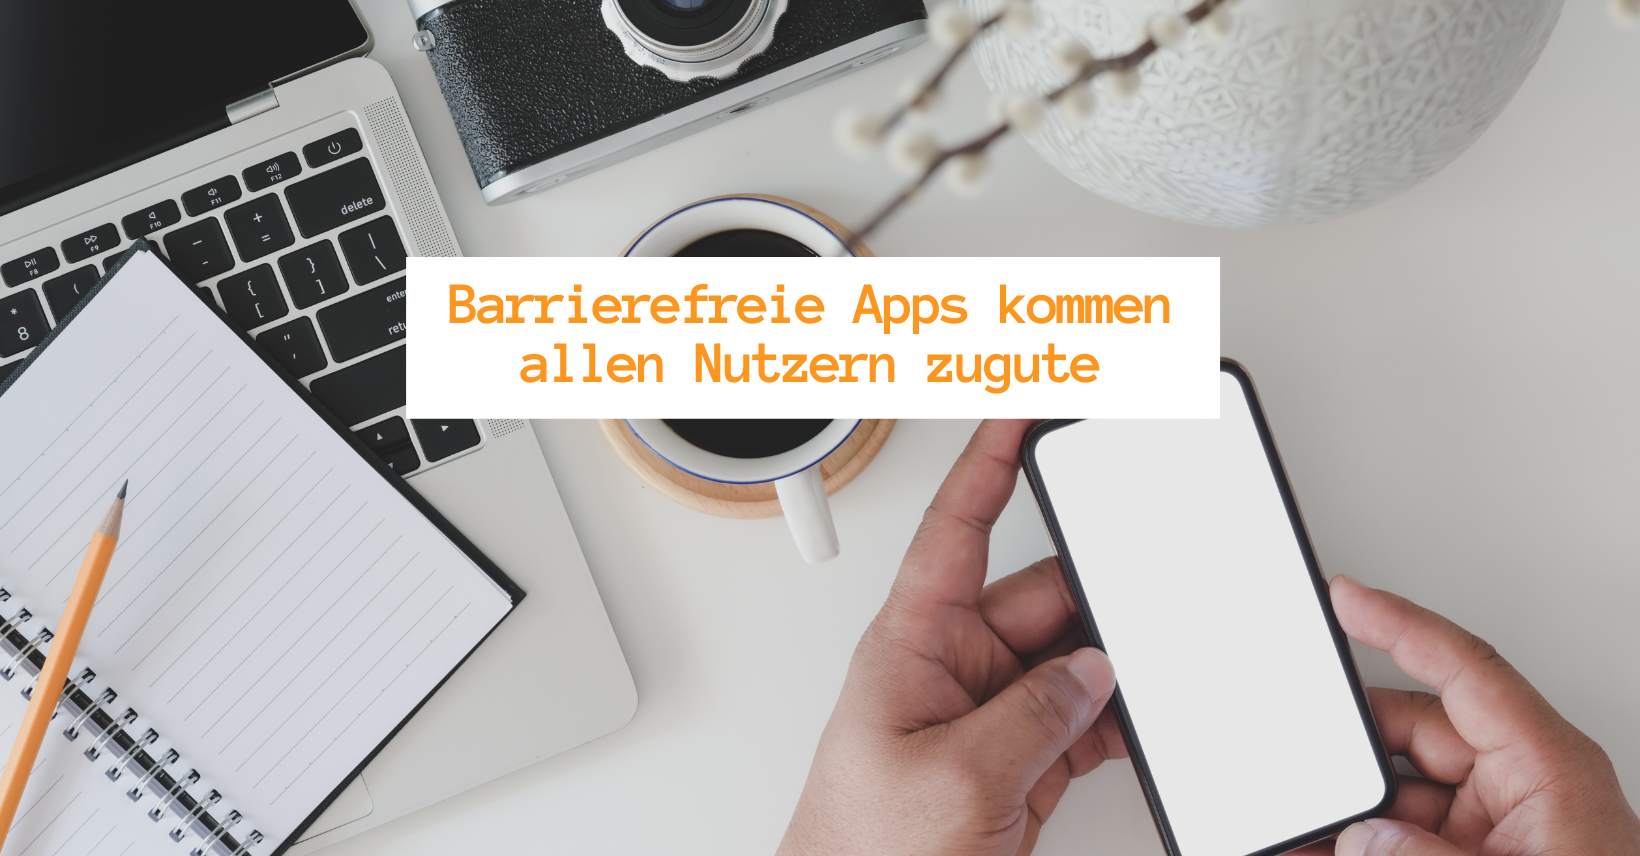 Barrierefreie Apps